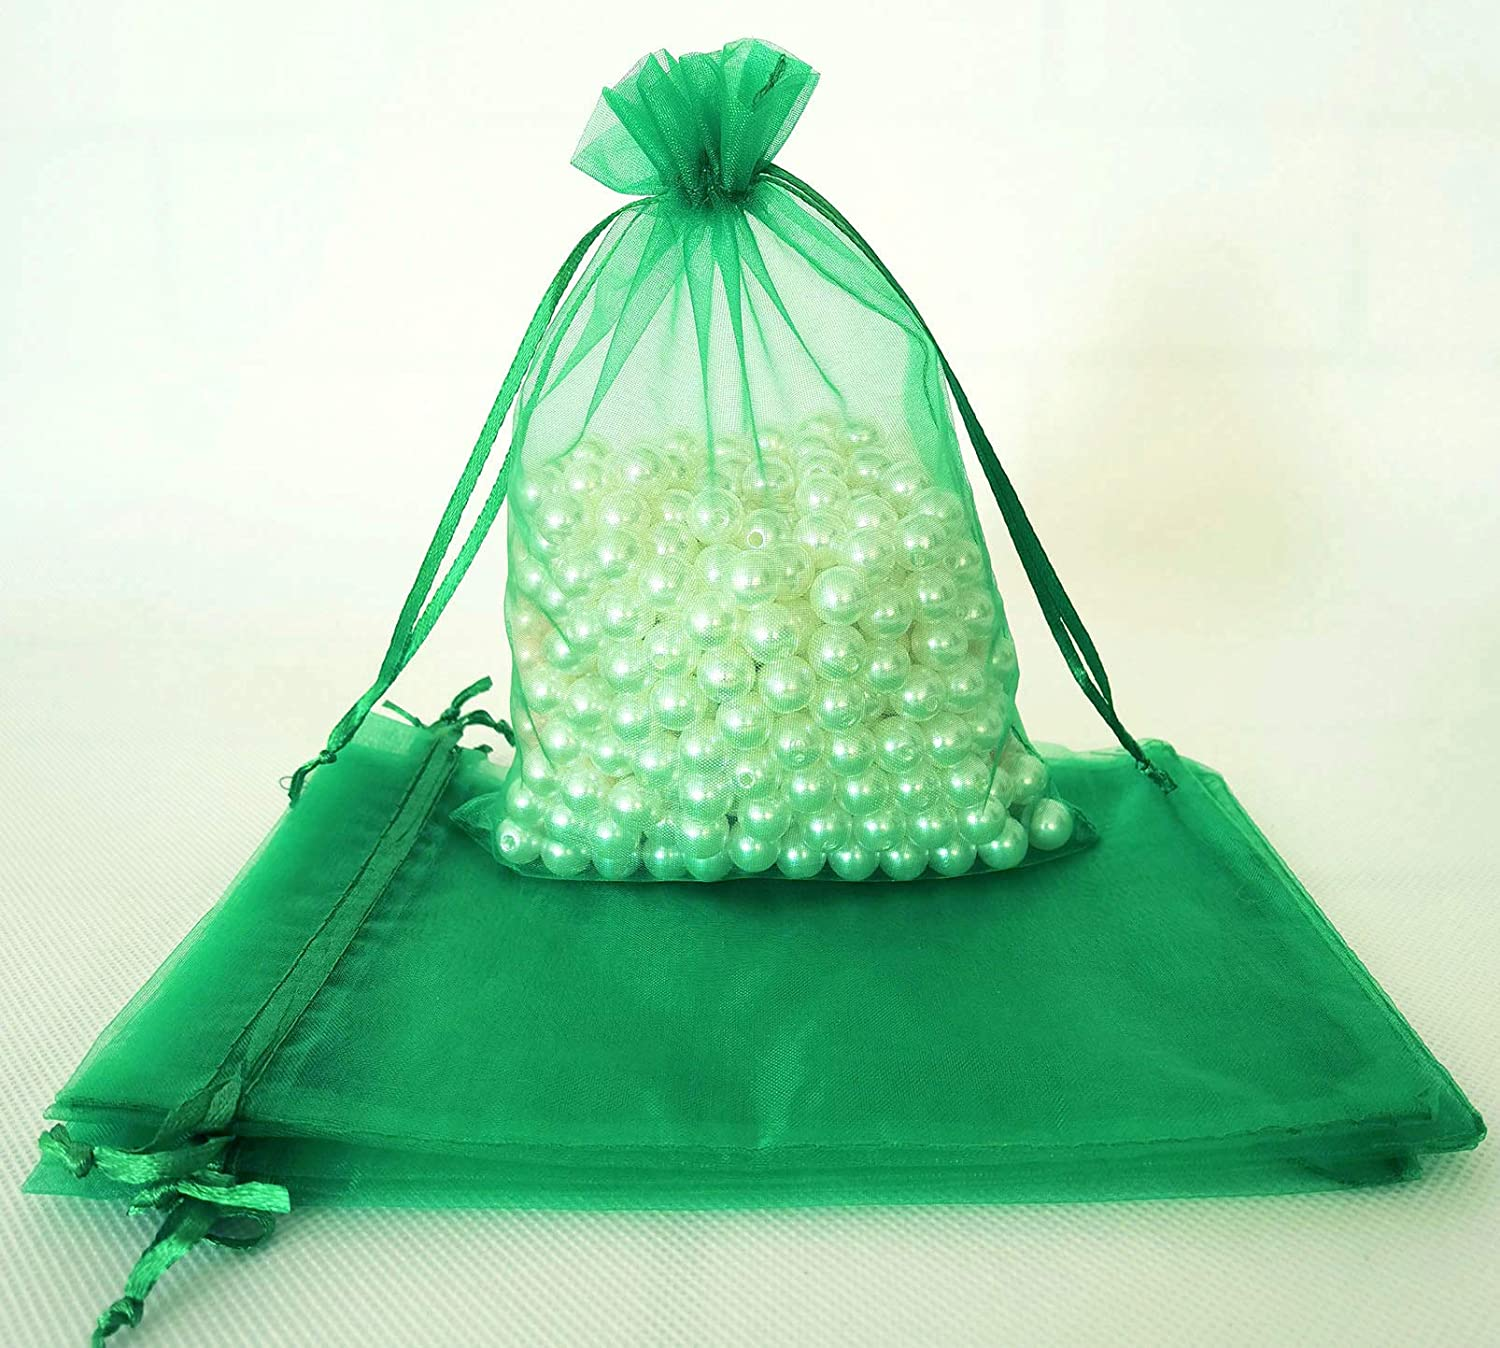 Euplee 100 Pcs Small Max 60% OFF Green Organza Max 49% OFF Wrap Inch with 5x7 Gift Bags